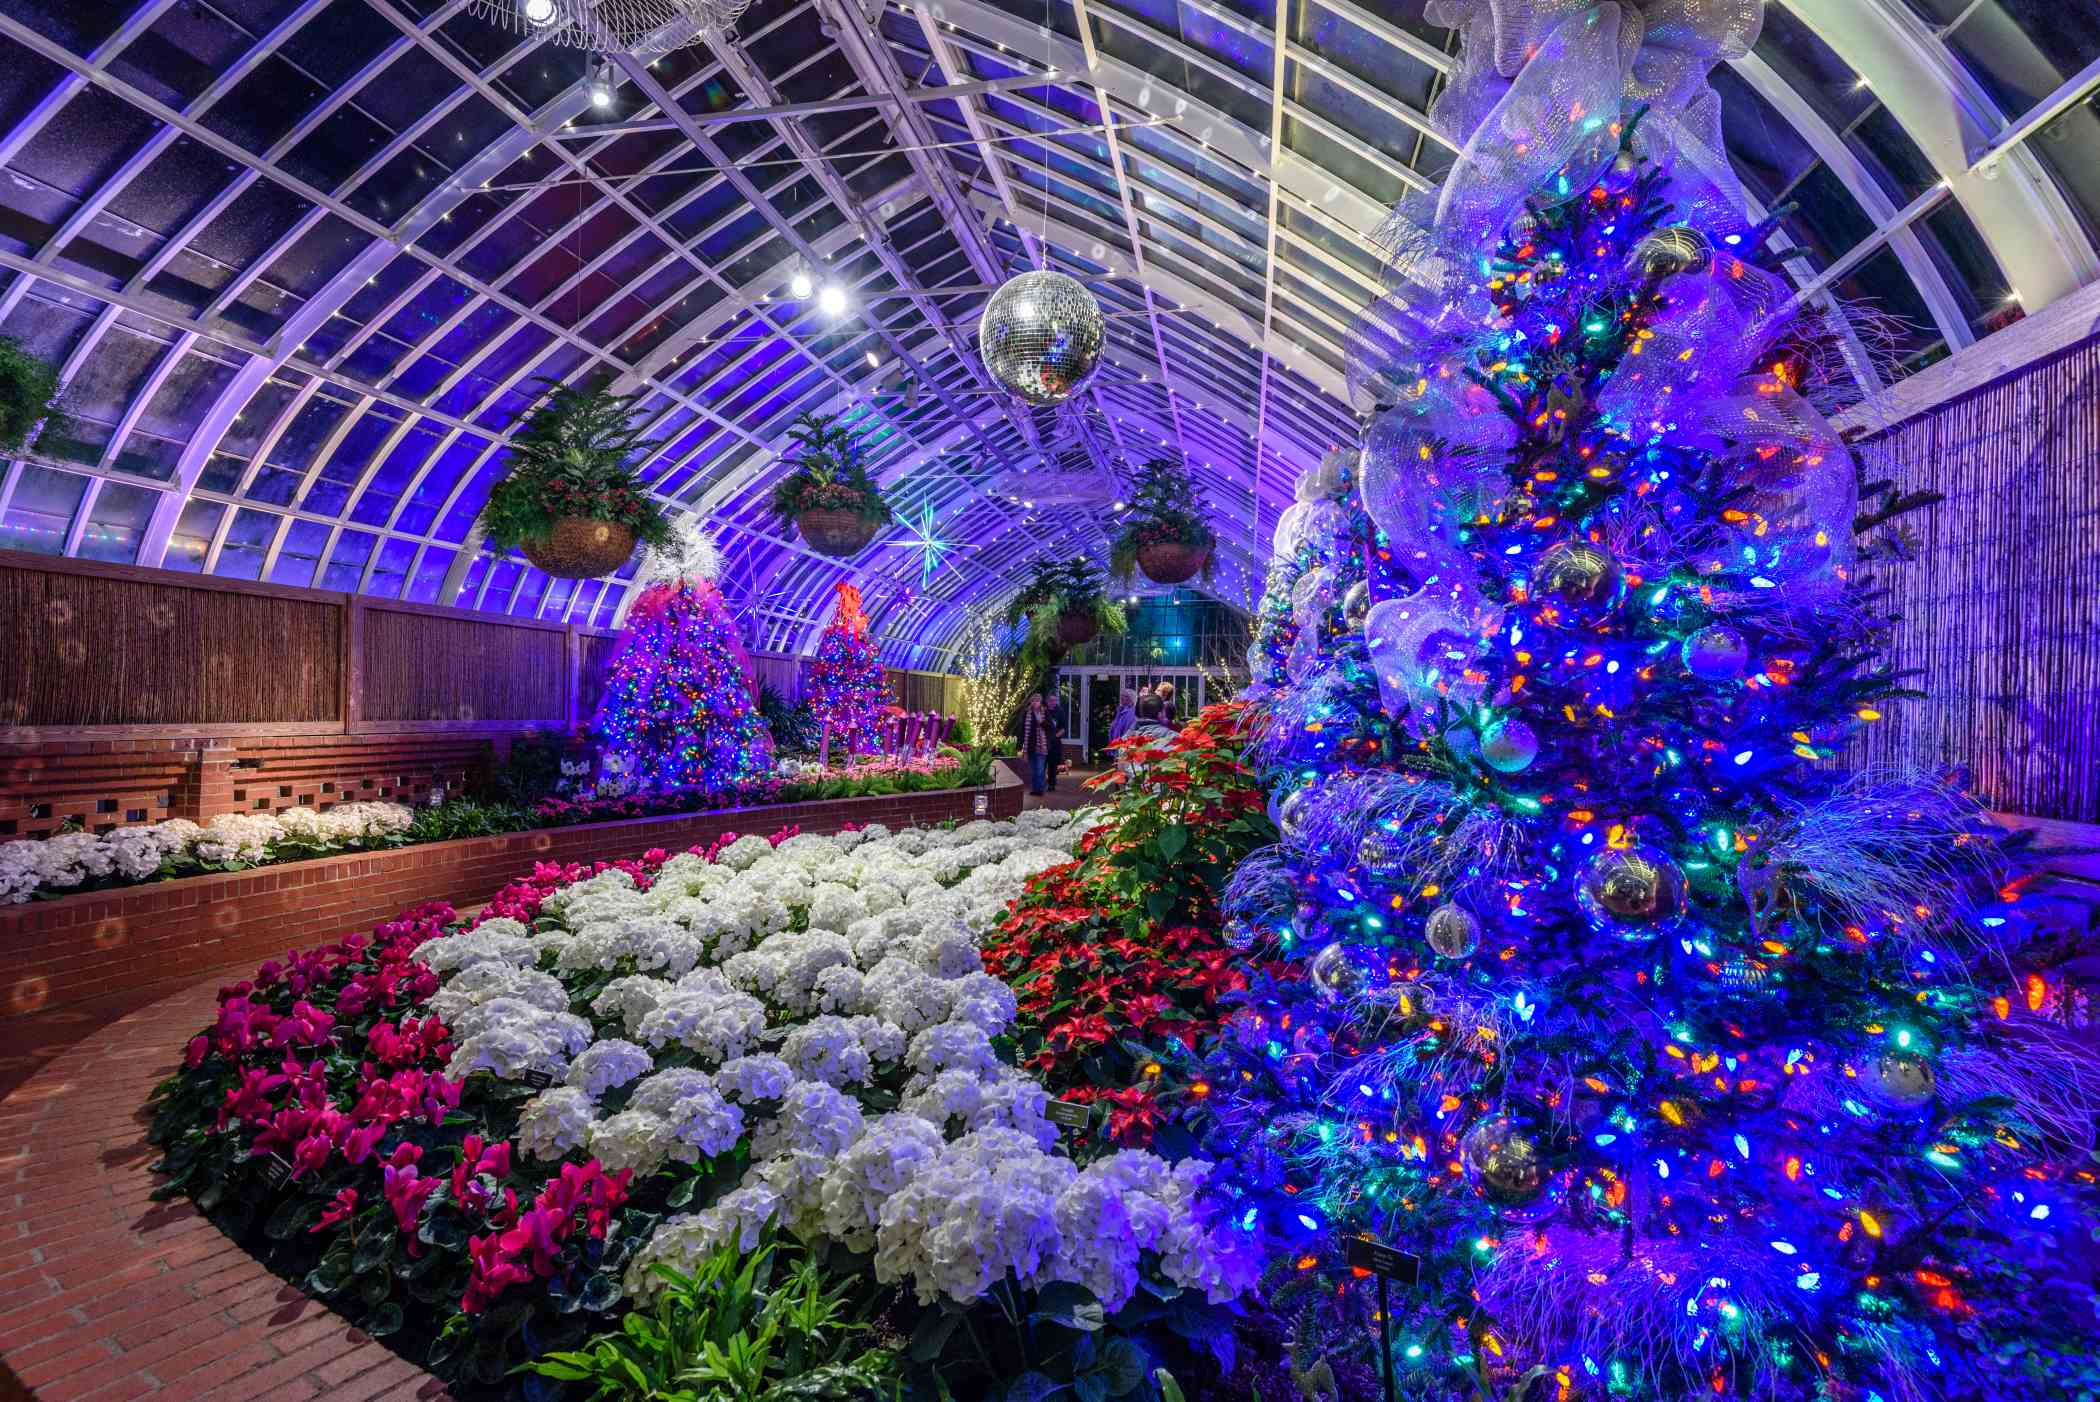 Phipps Conservatory Christmas 2021 Winter Flower Show And Light Garden 2017 Holiday Magic Phipps Conservatory And Botanical Gardens Pittsburgh Pa